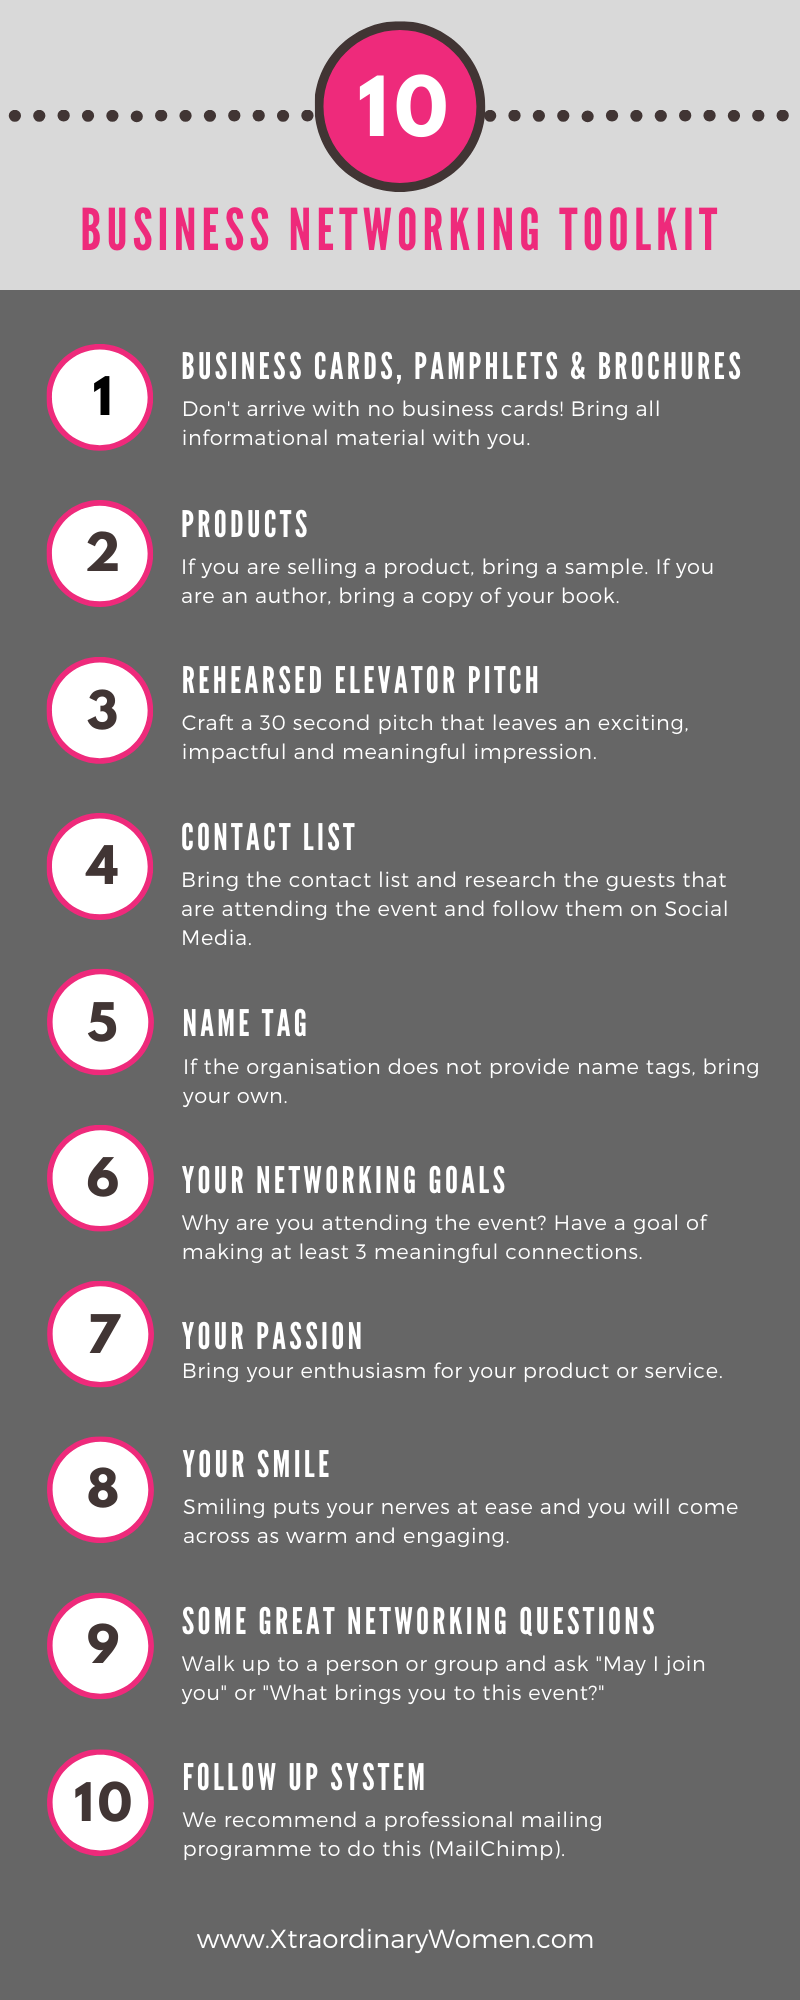 10 Business Networking ToolKit Infographic